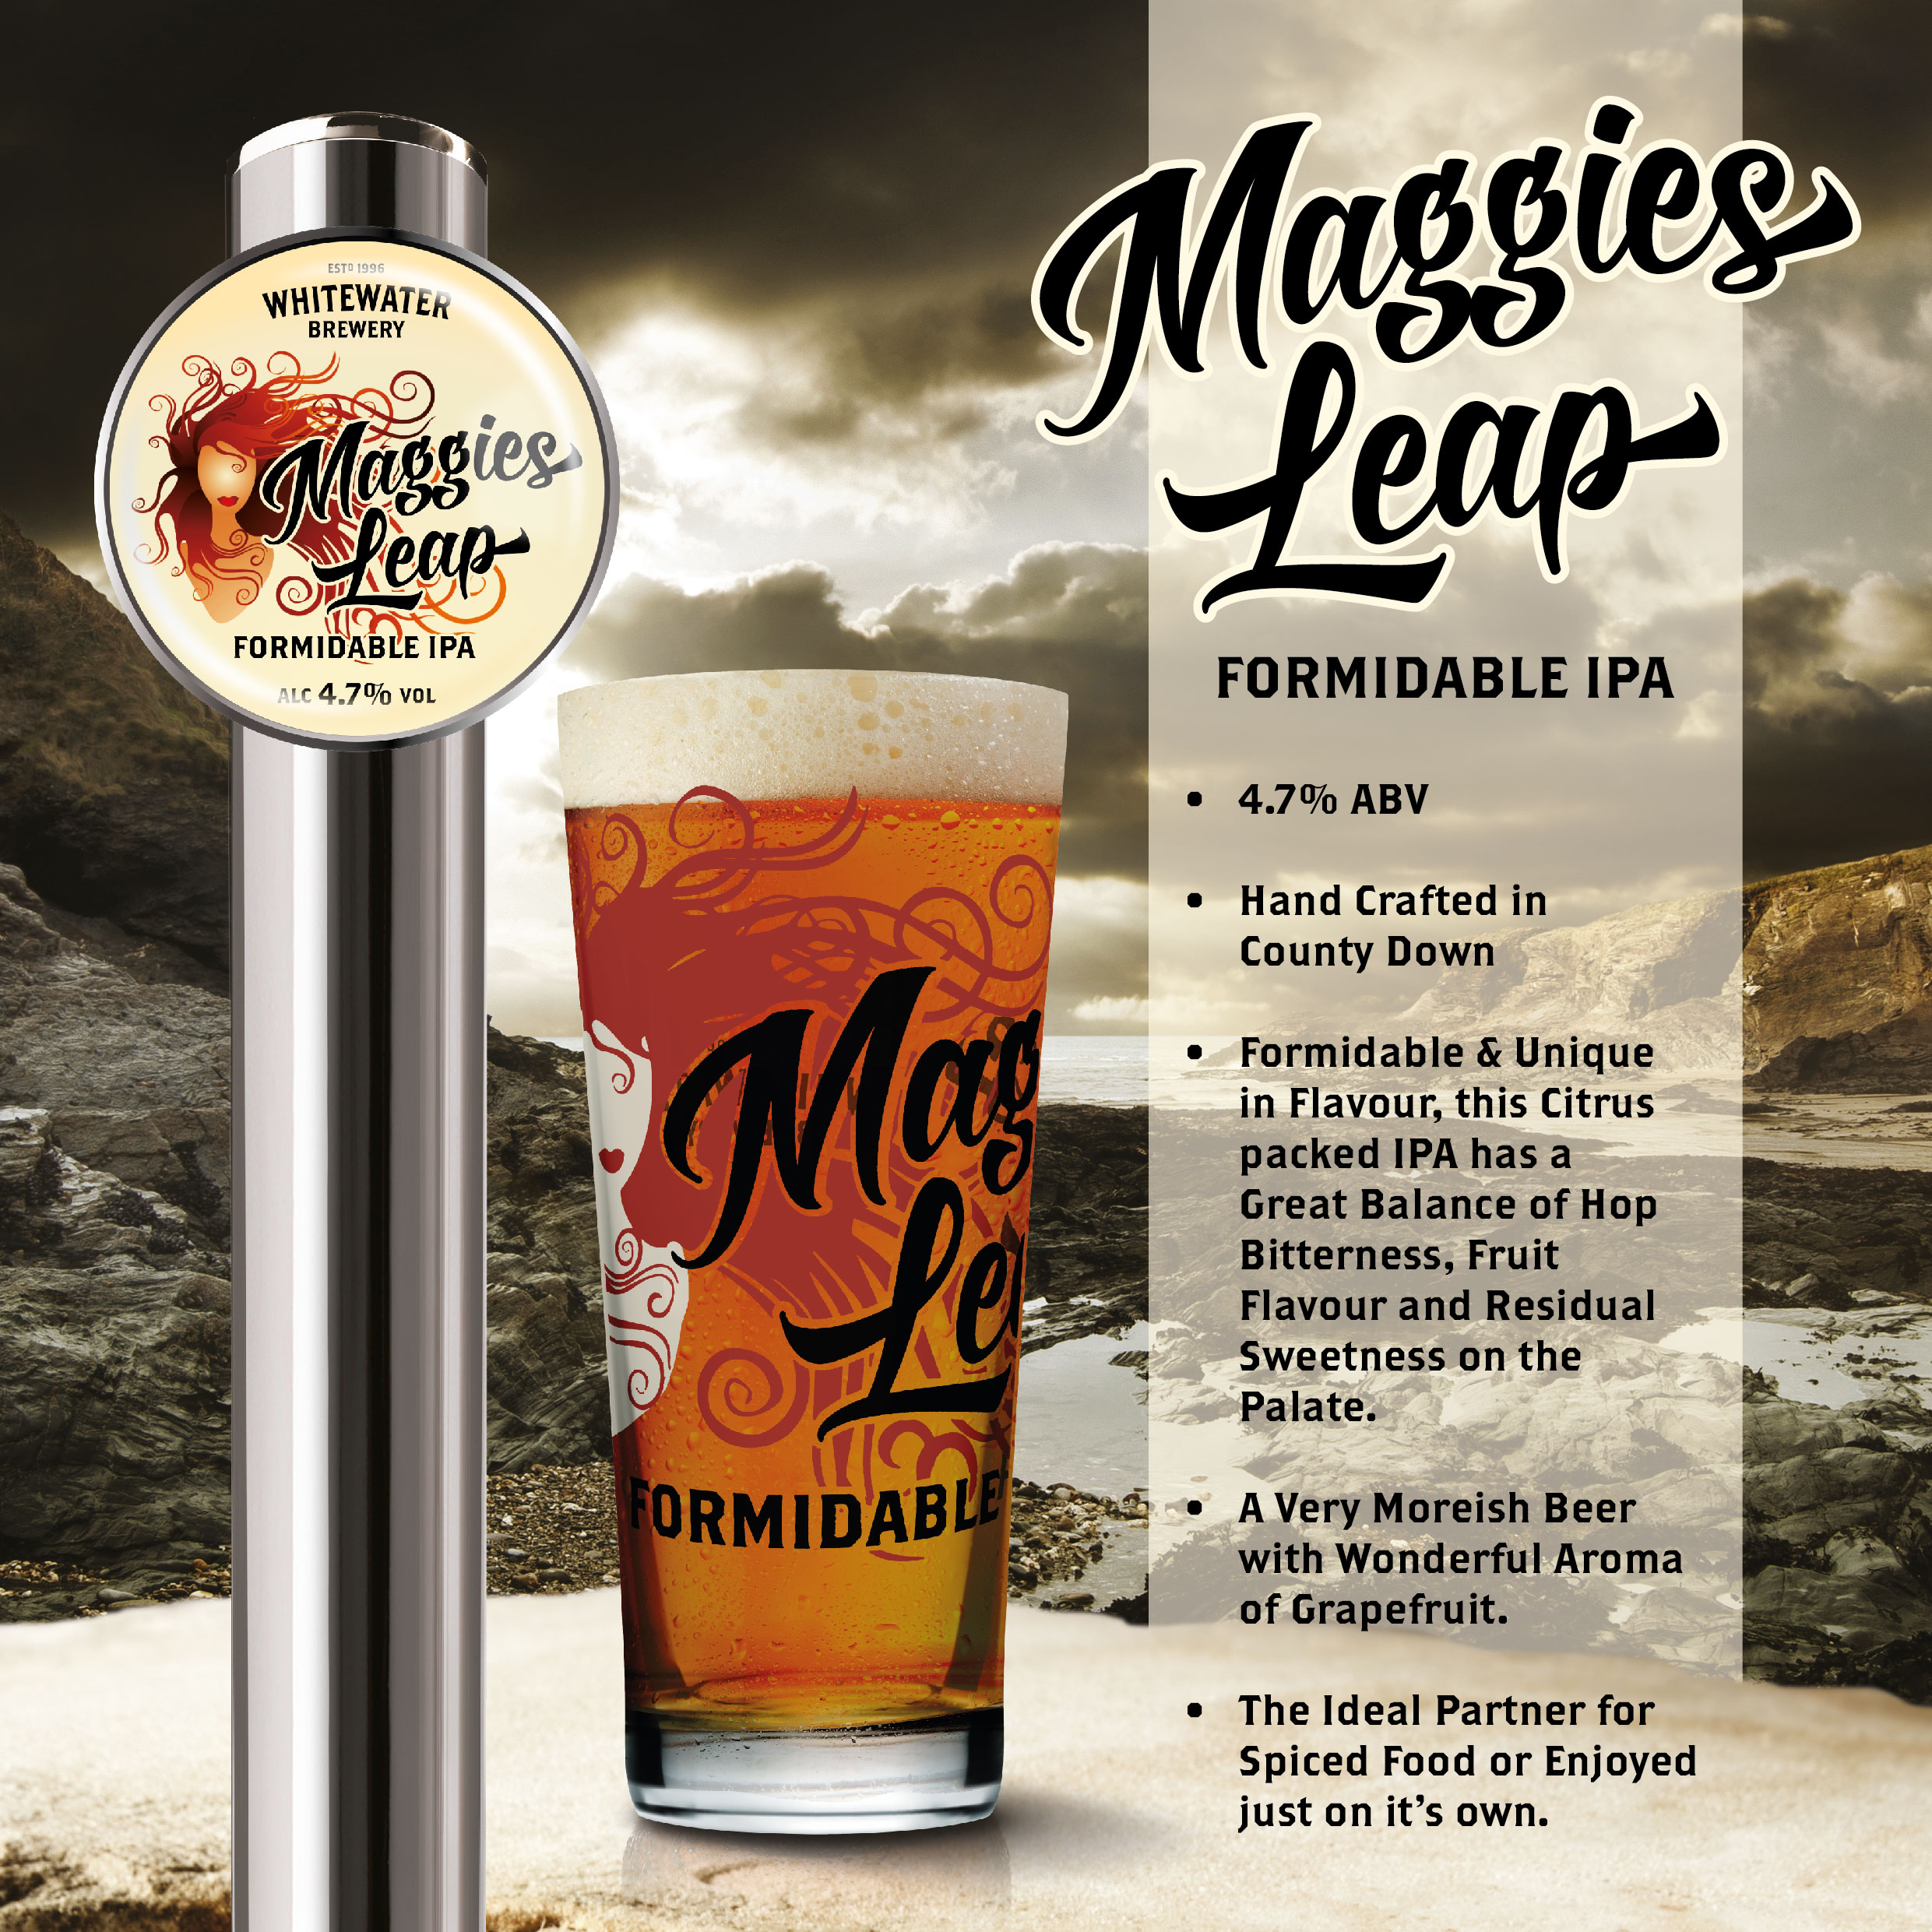 Maggies Leap Craft Beer Launched Whitewater Brewery